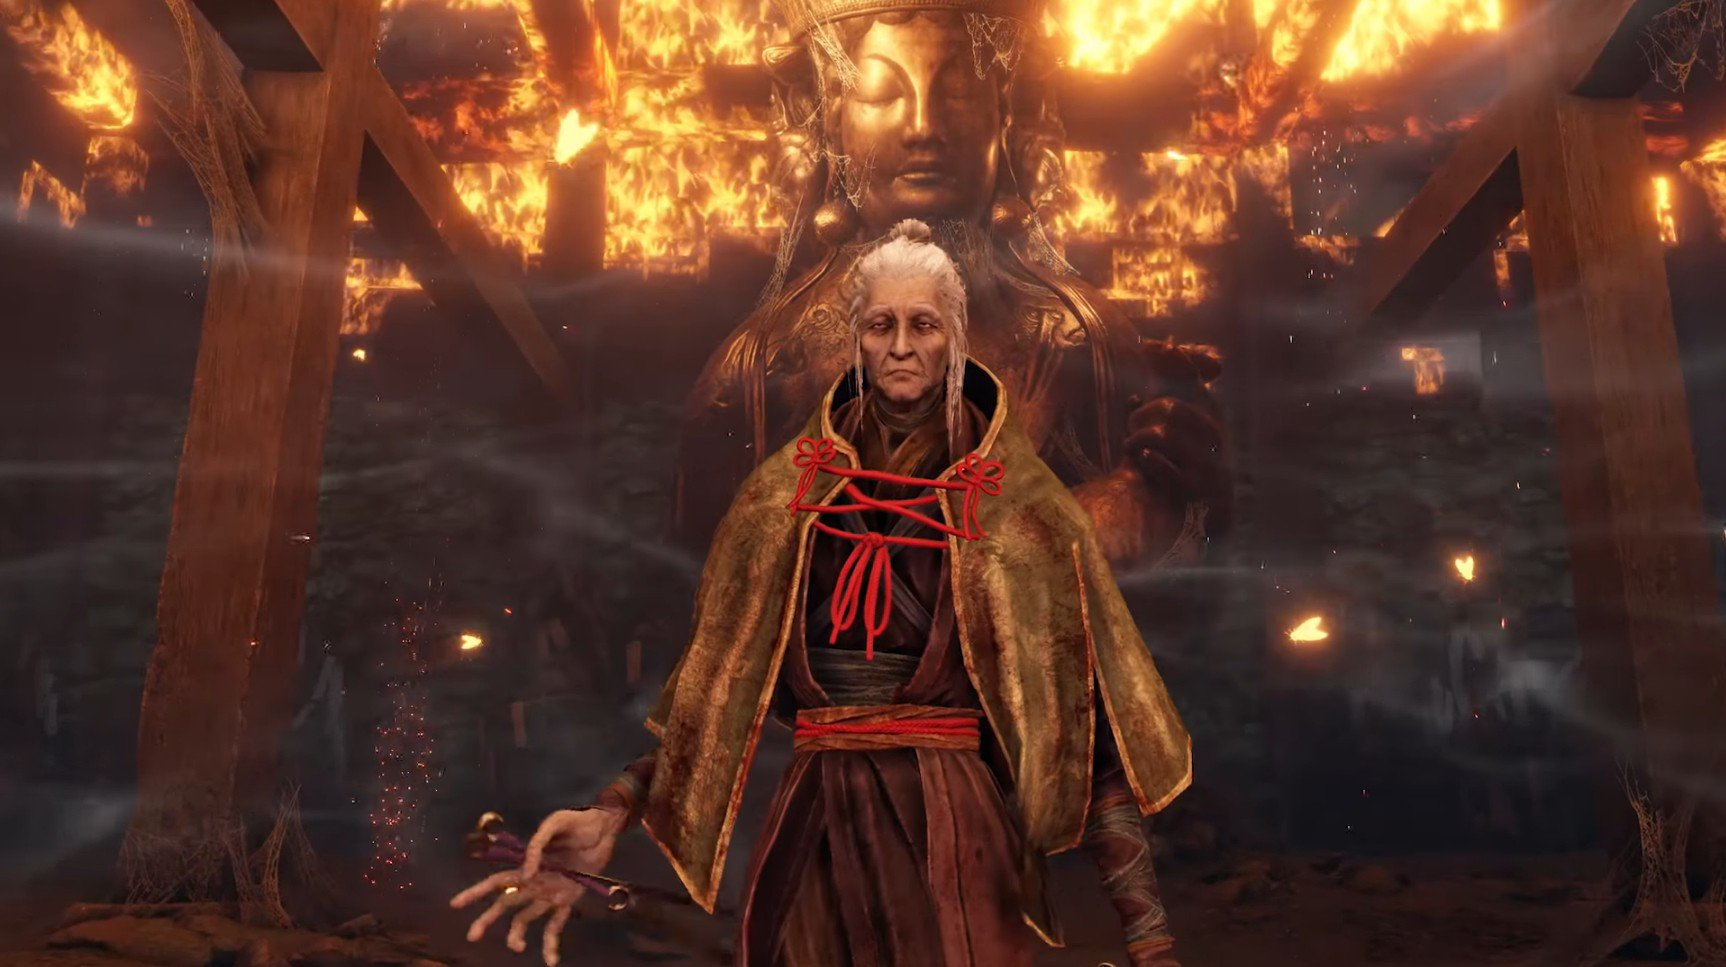 Defeat Lady Butterfly in Sekiro: Shadows Die Twice to earn a Sakura Droplet.